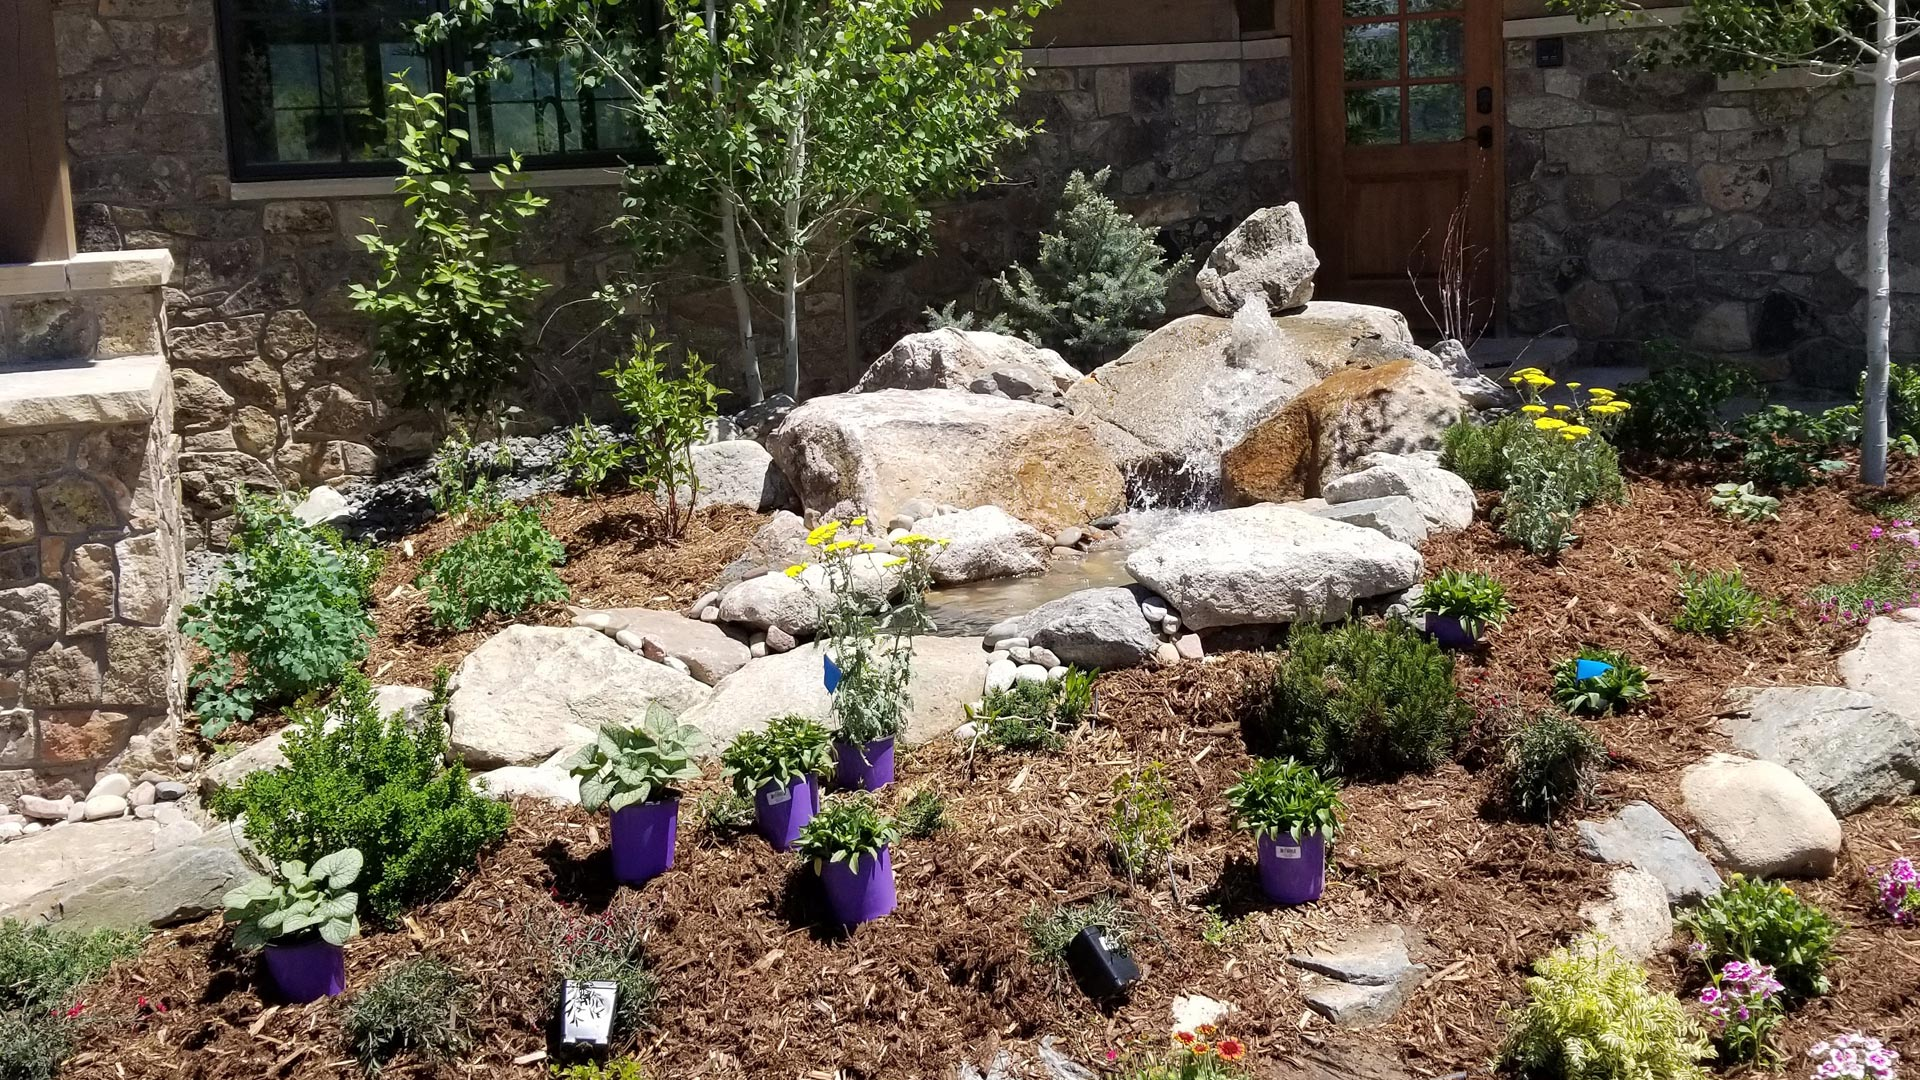 Preparing a landscaping bed for plantings in front of a residential home in Winter Park, CO.